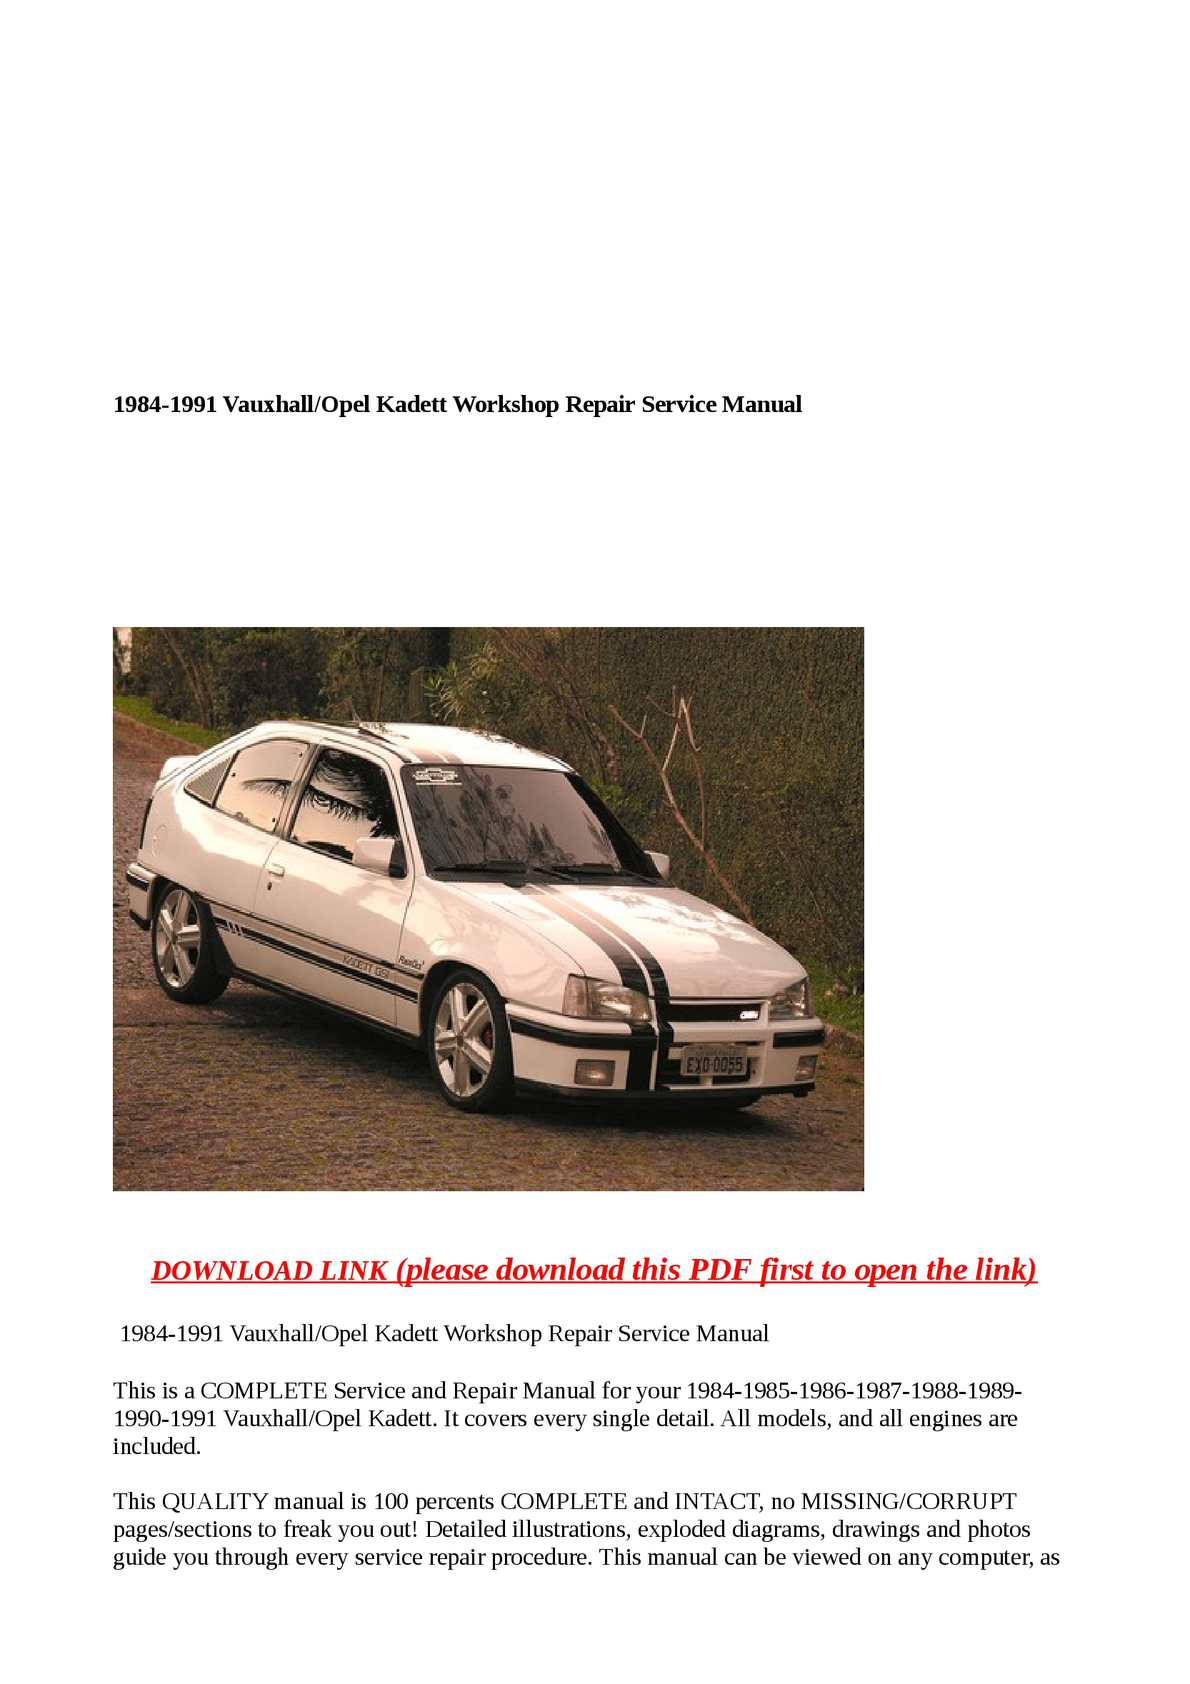 Calamo 1984 1991 Vauxhall Opel Kadett Workshop Repair Service Manual Vacuum Diagram